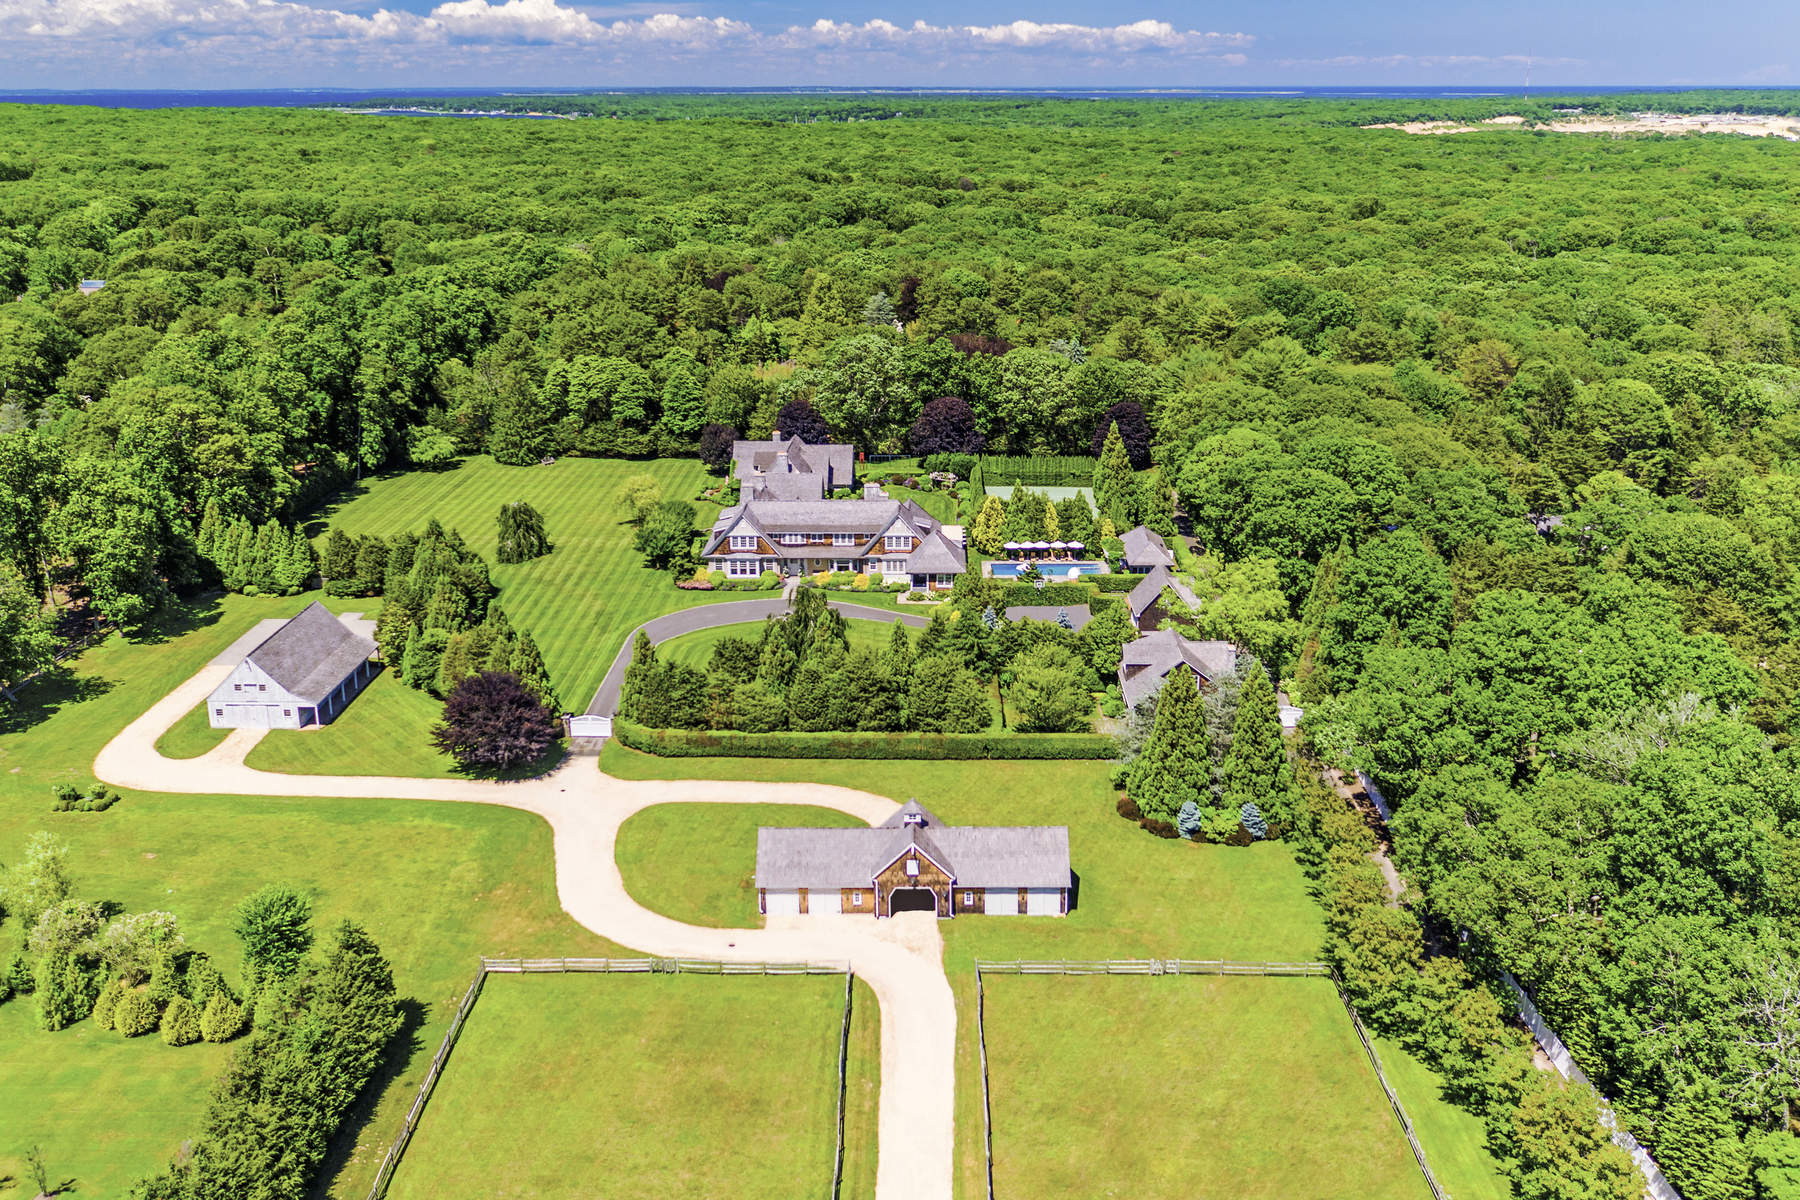 Single Family Home for Sale at WORLD CLASS EAST HAMPTON ESTATE 172 Cedar Street, East Hampton, New York, 11937 United States